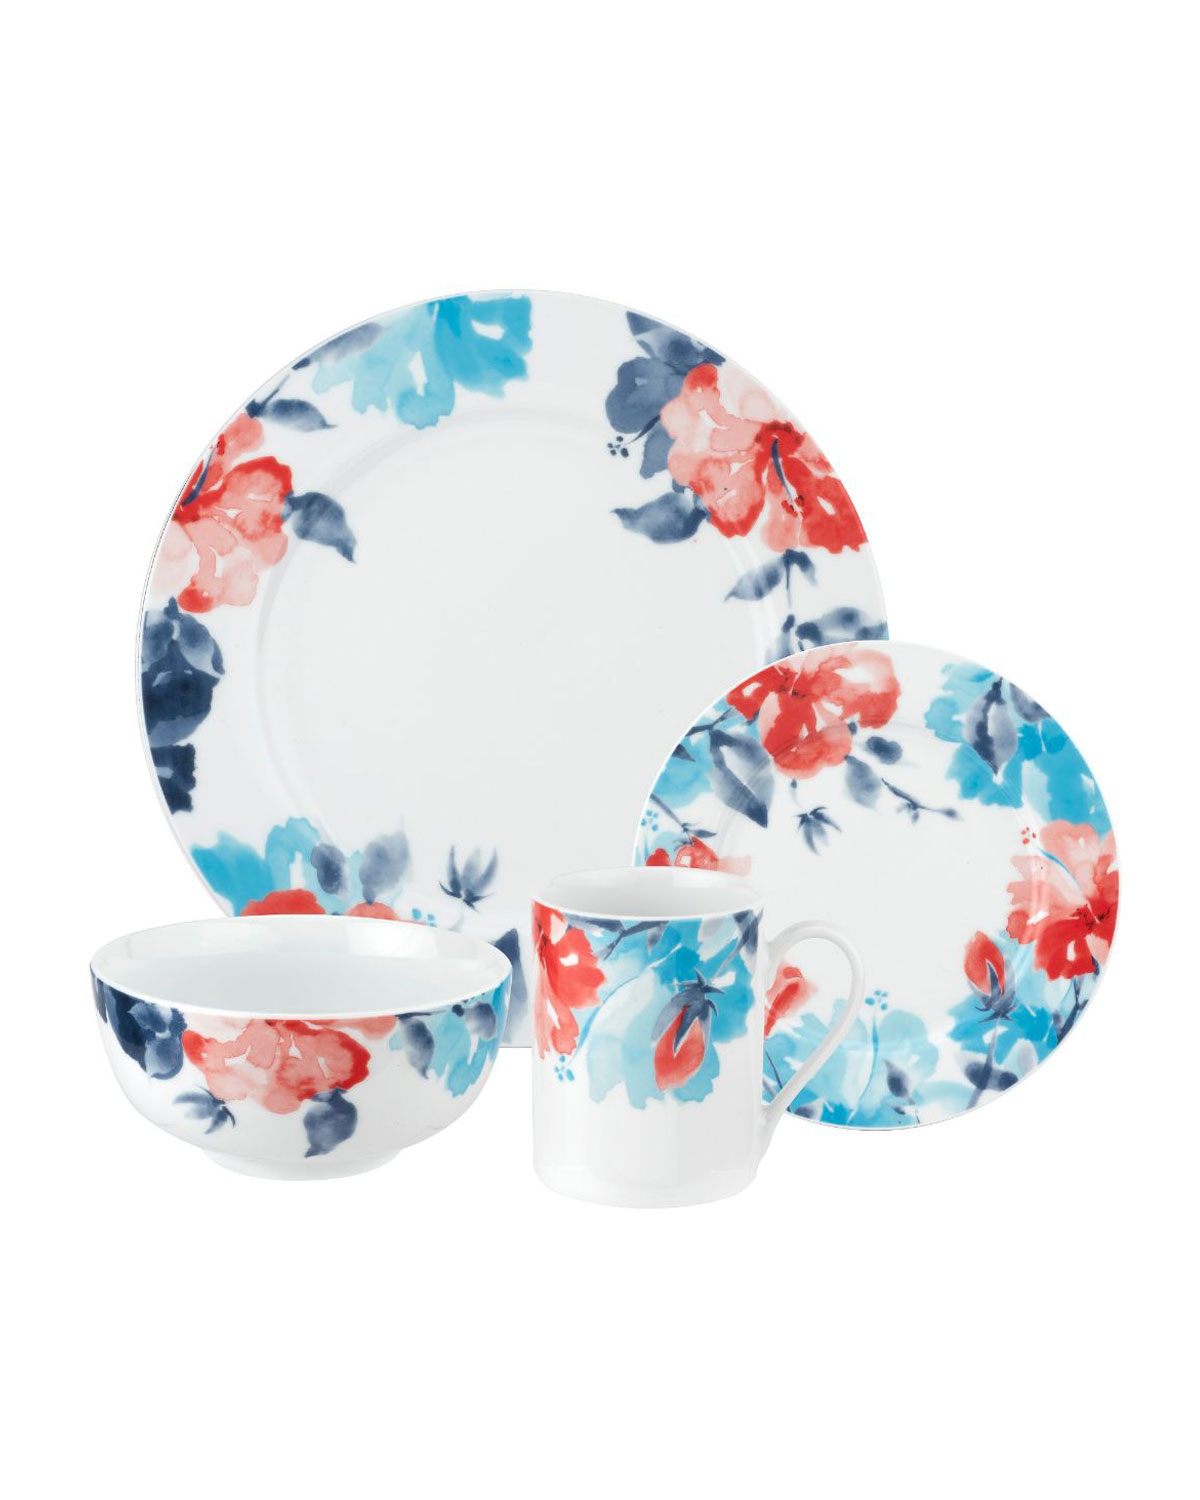 Spode Floral Breeze 16-Piece Dinnerware Set